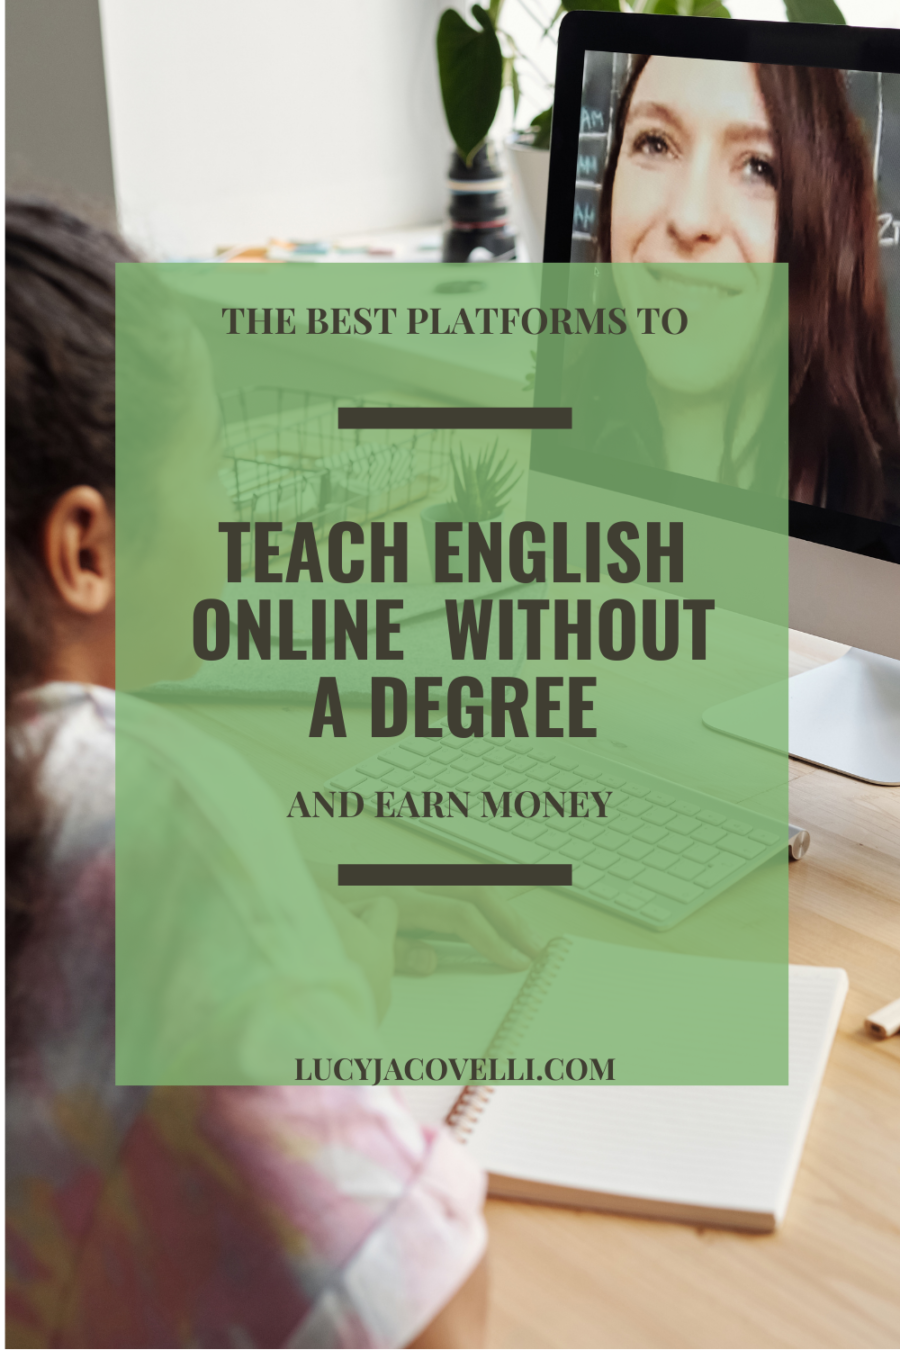 teach english online and earn money without a degree